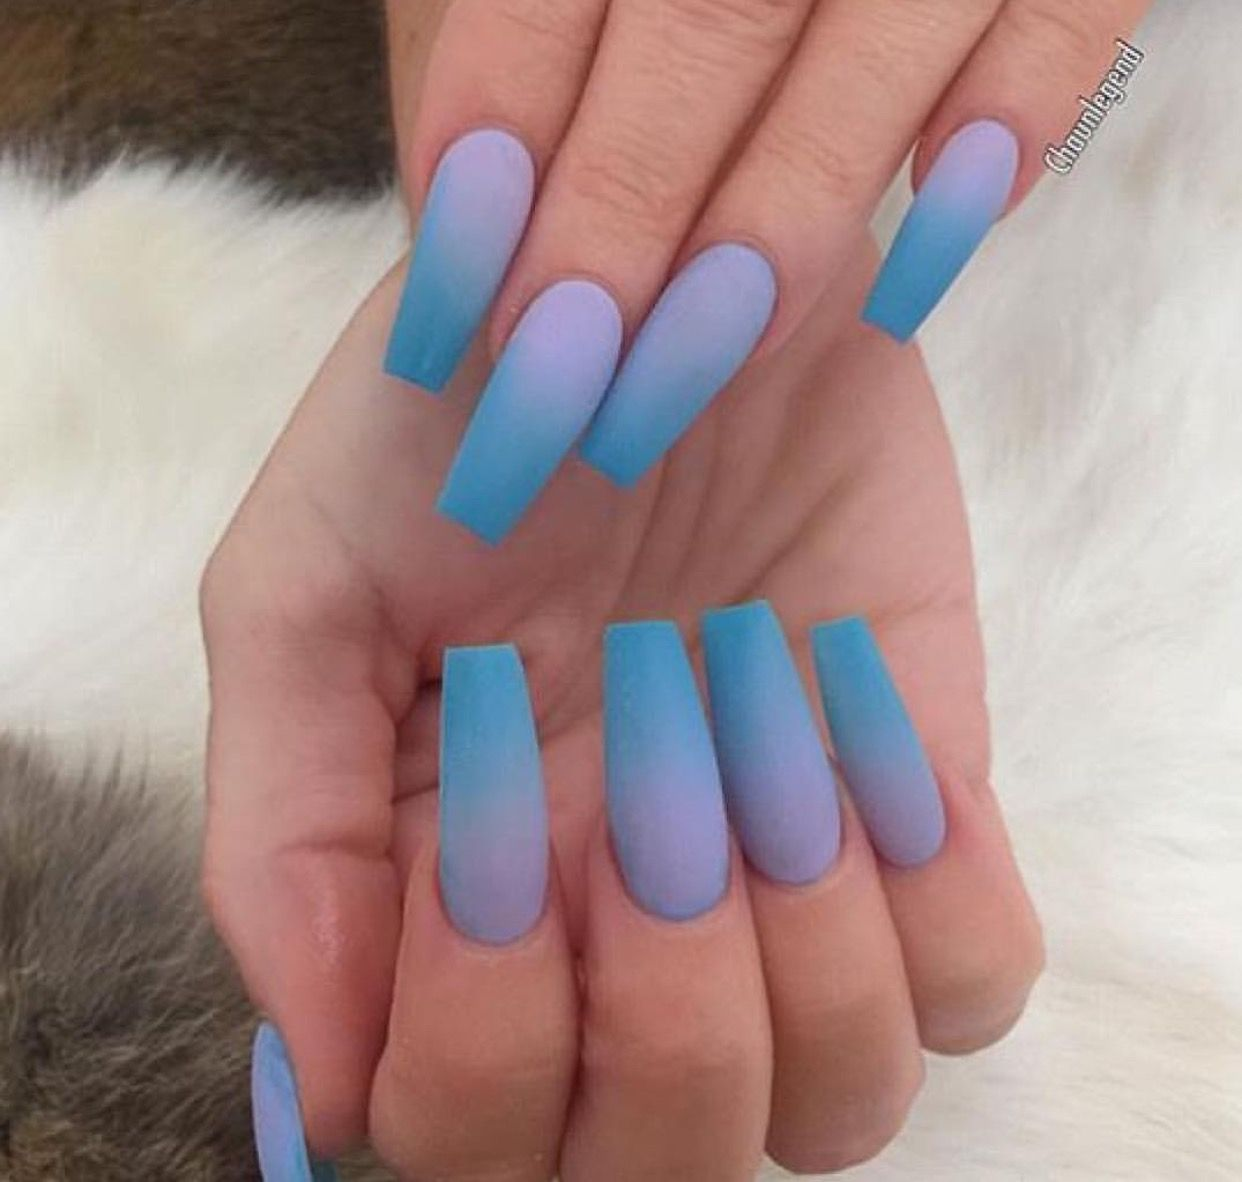 Hair Nails And Style Faded Nails Acrylic Nails Coffin Ombre Powder Nails